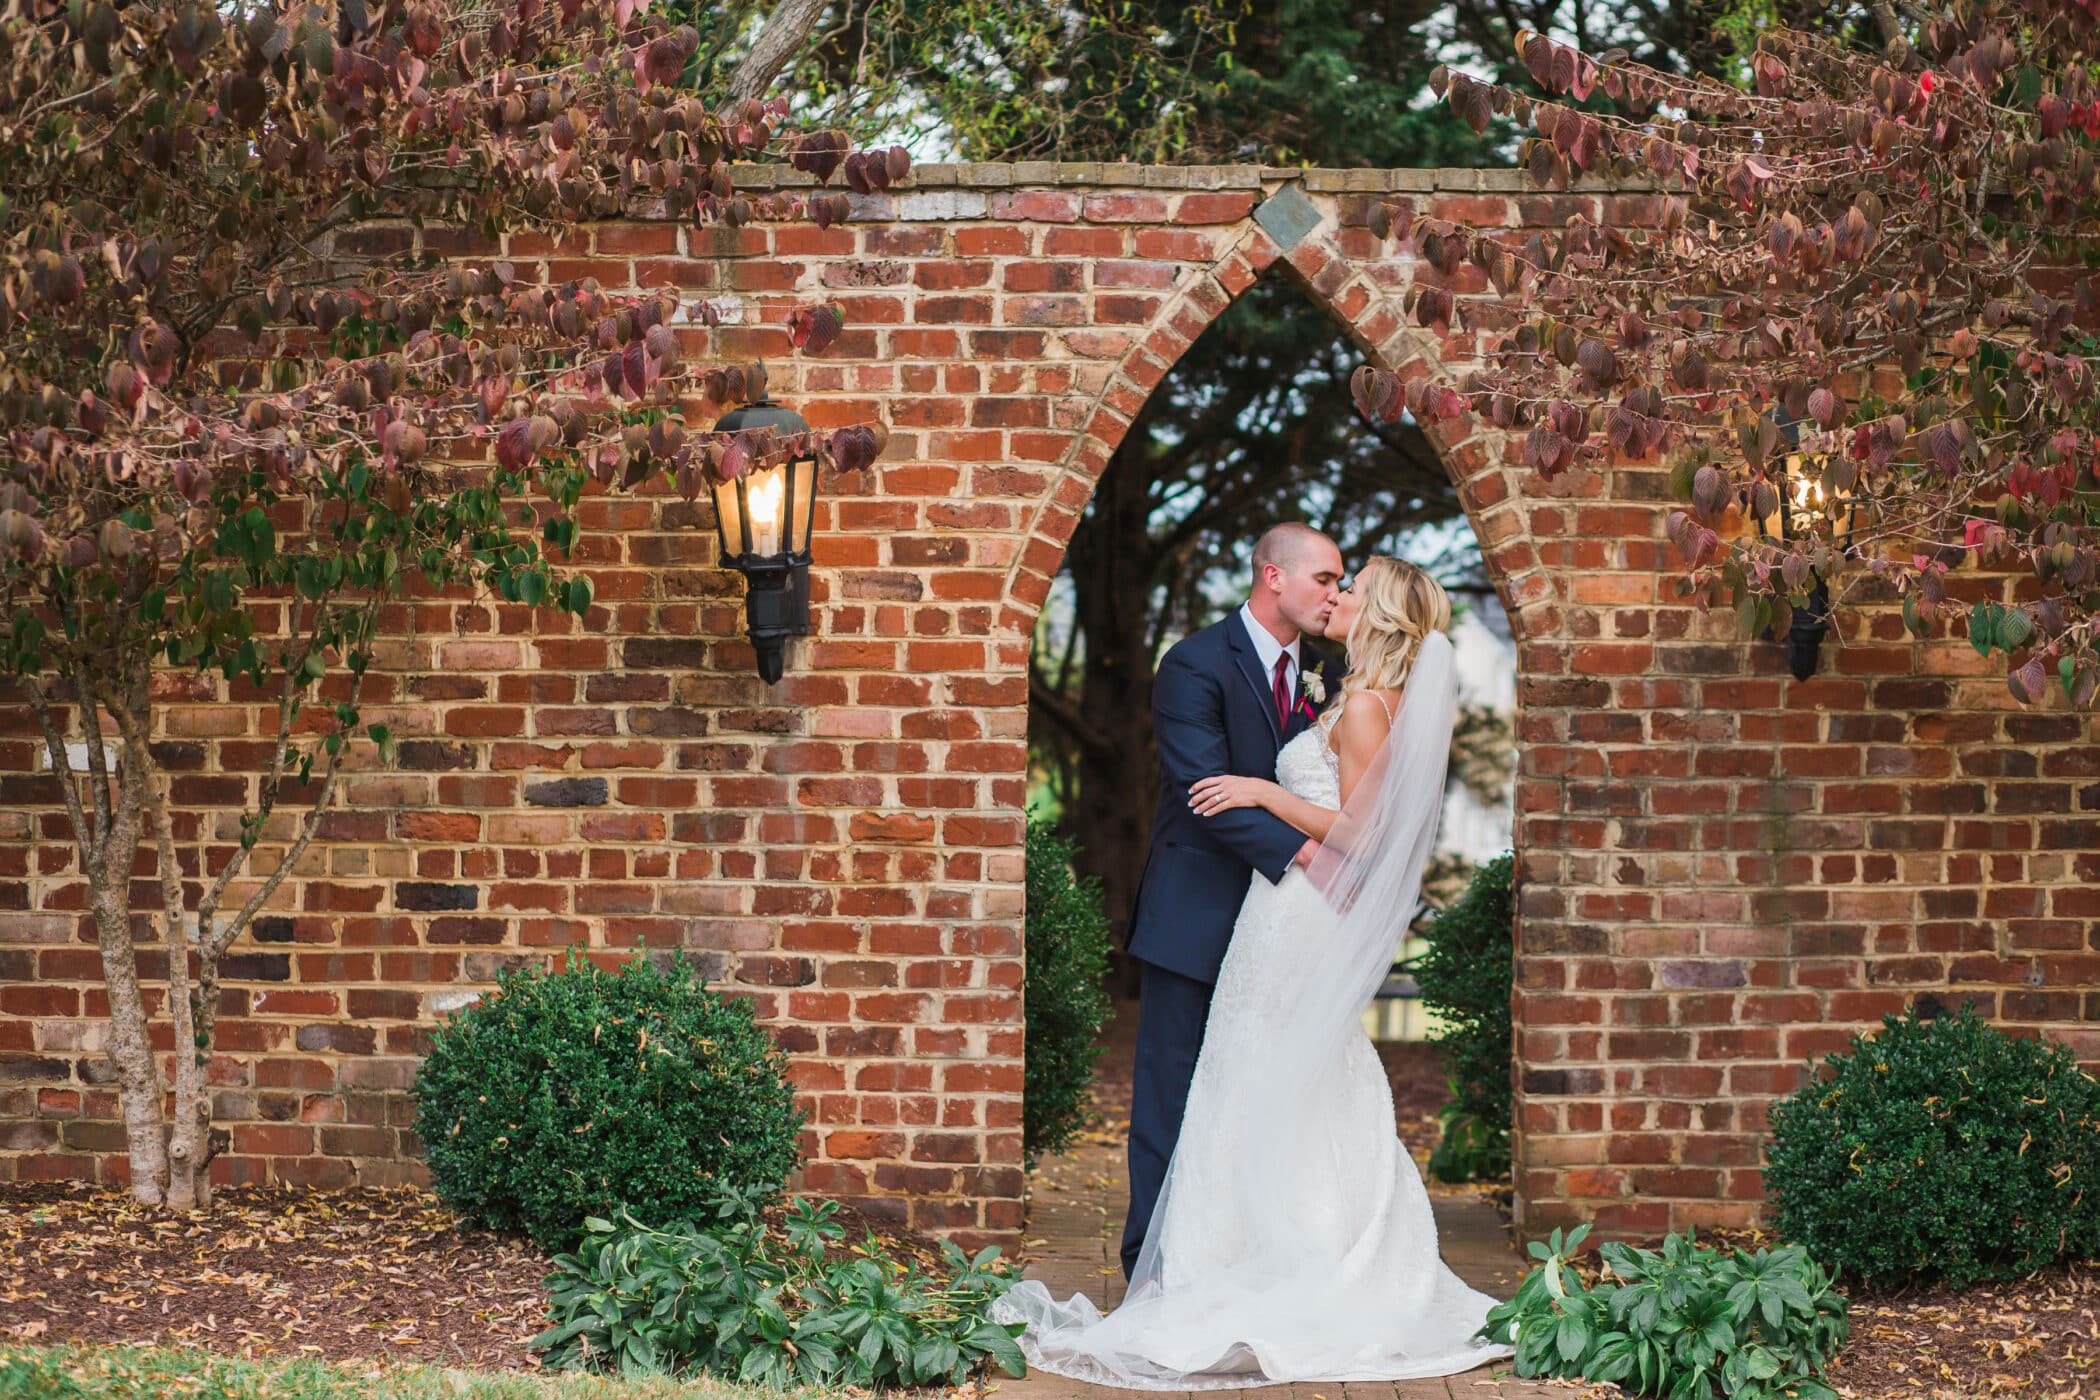 Selecting Your Virginia Wedding Venue | Entwined Events | Venue: West Manor Estate in Forest, VA | Photo Credit: Heather Kidd Photography